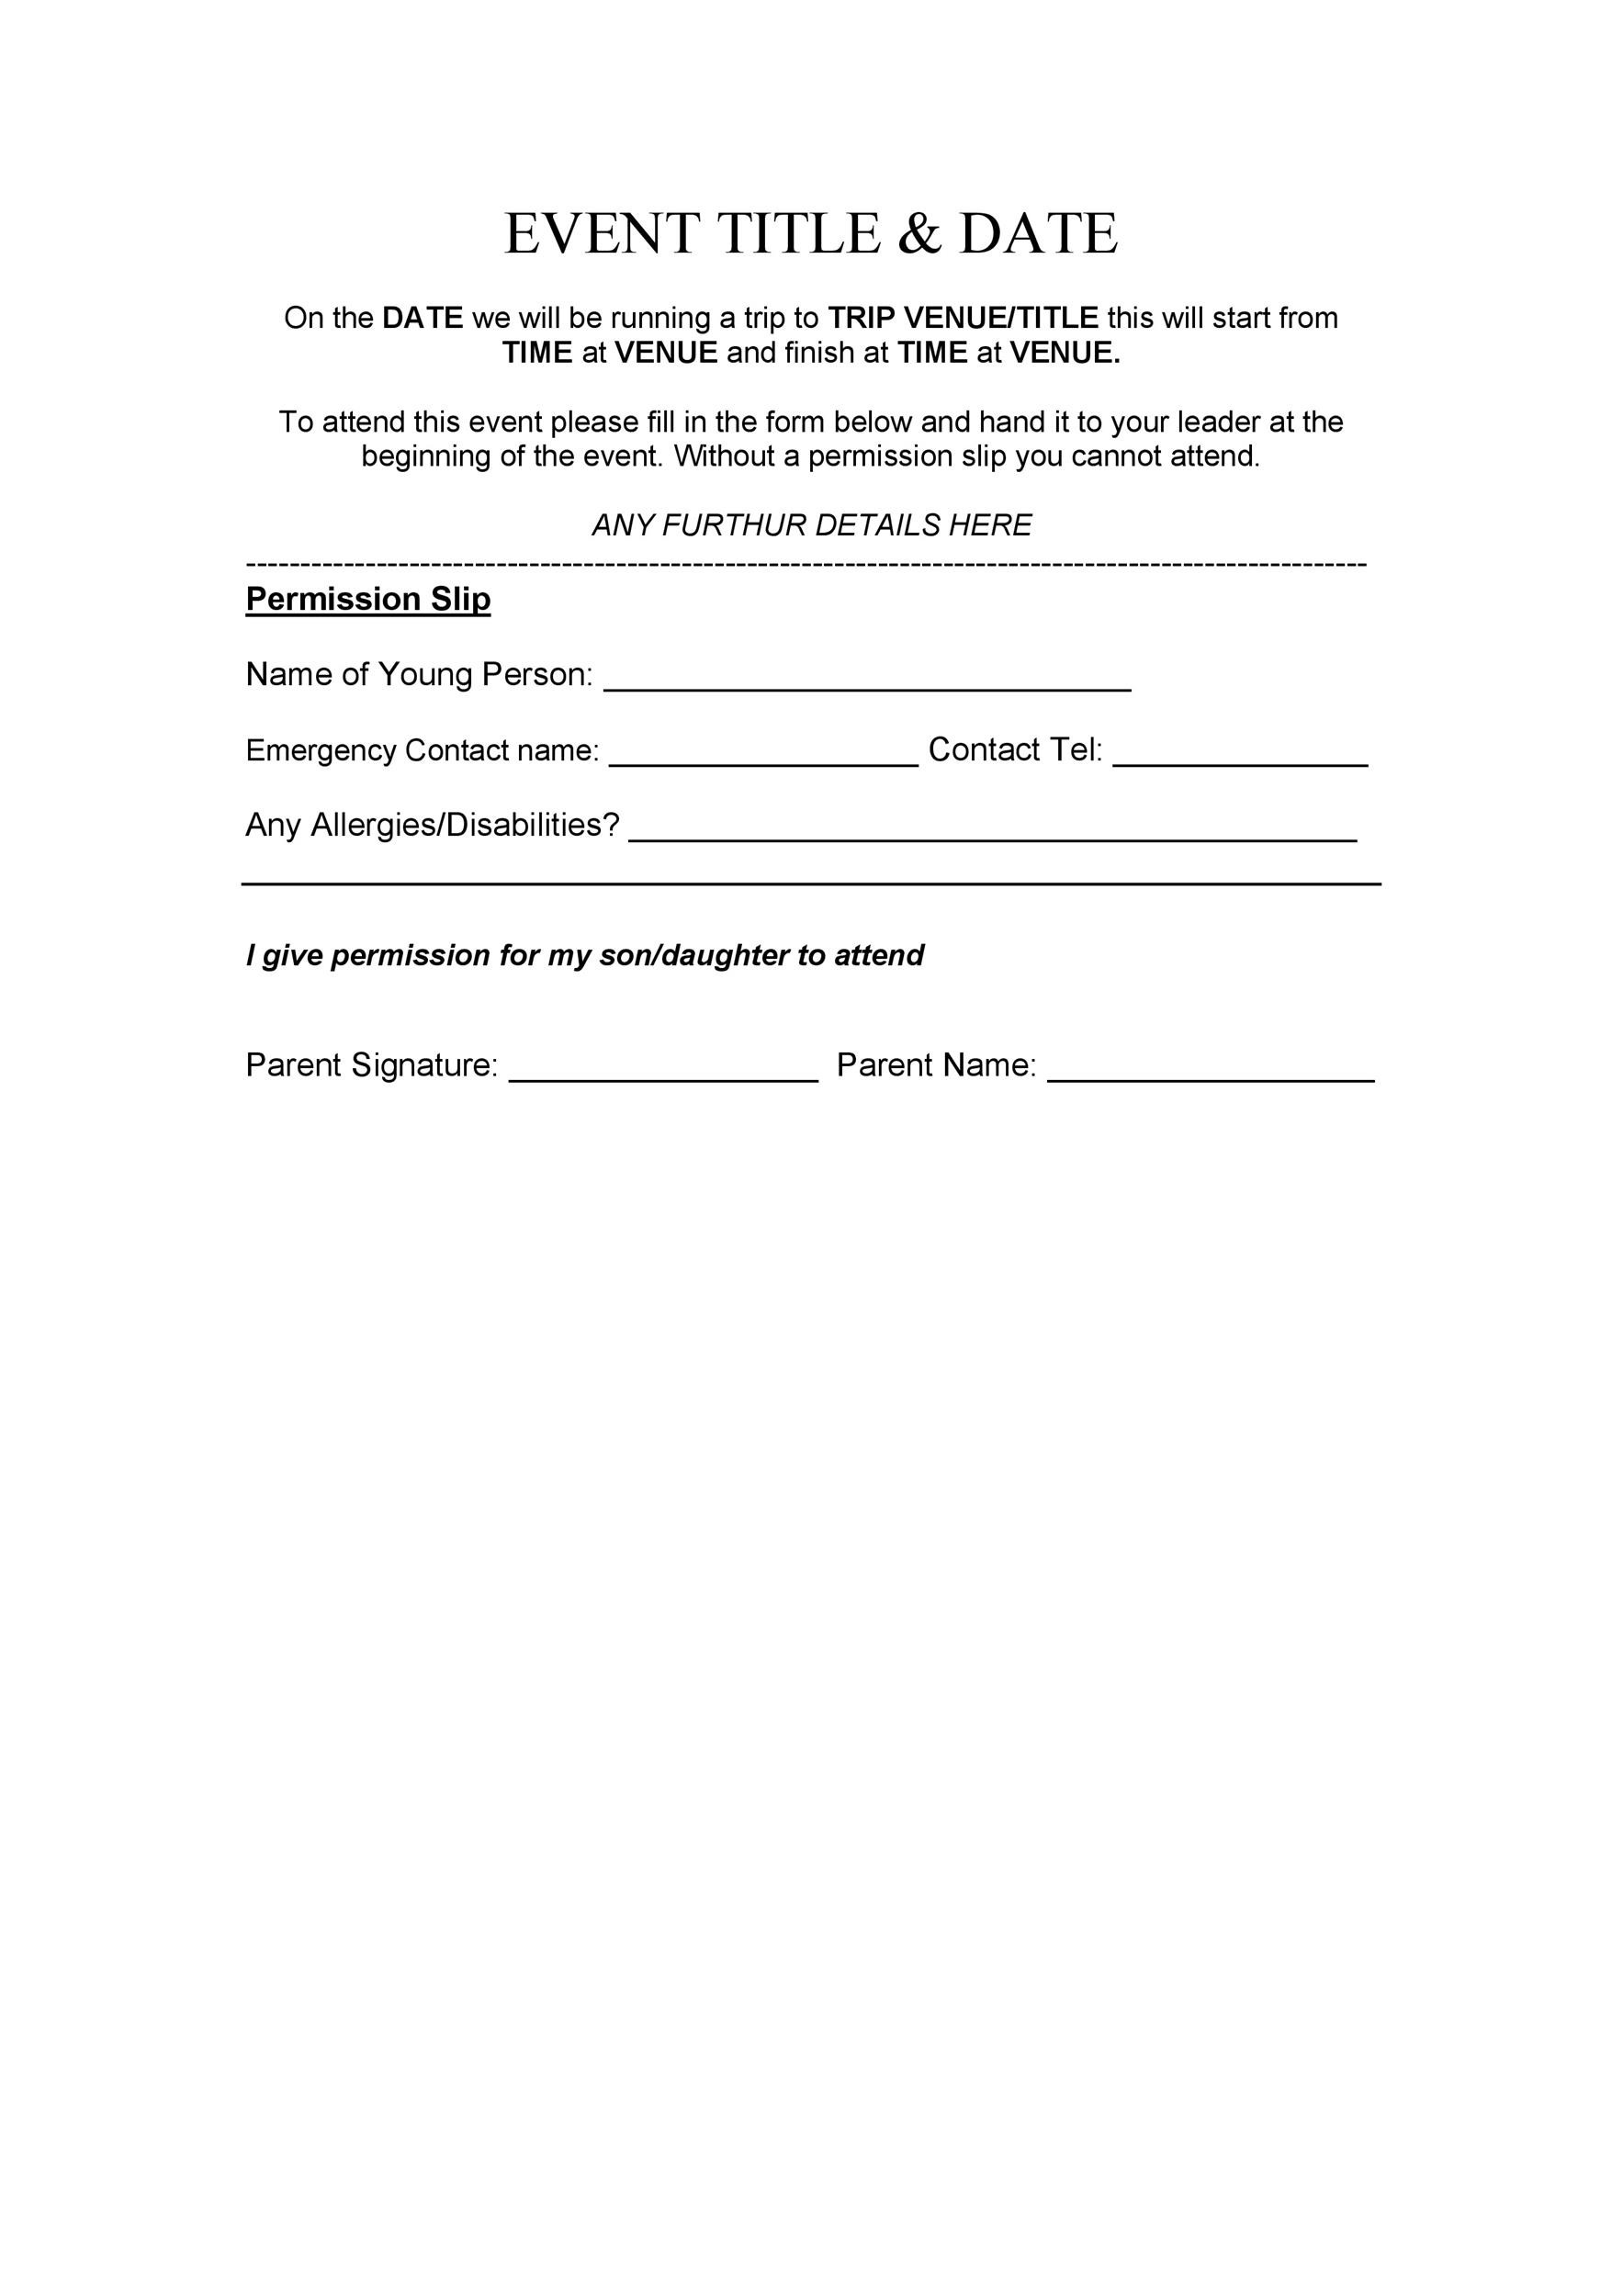 Amazing Printable Permission Slip 10  Permission Slip Template Word